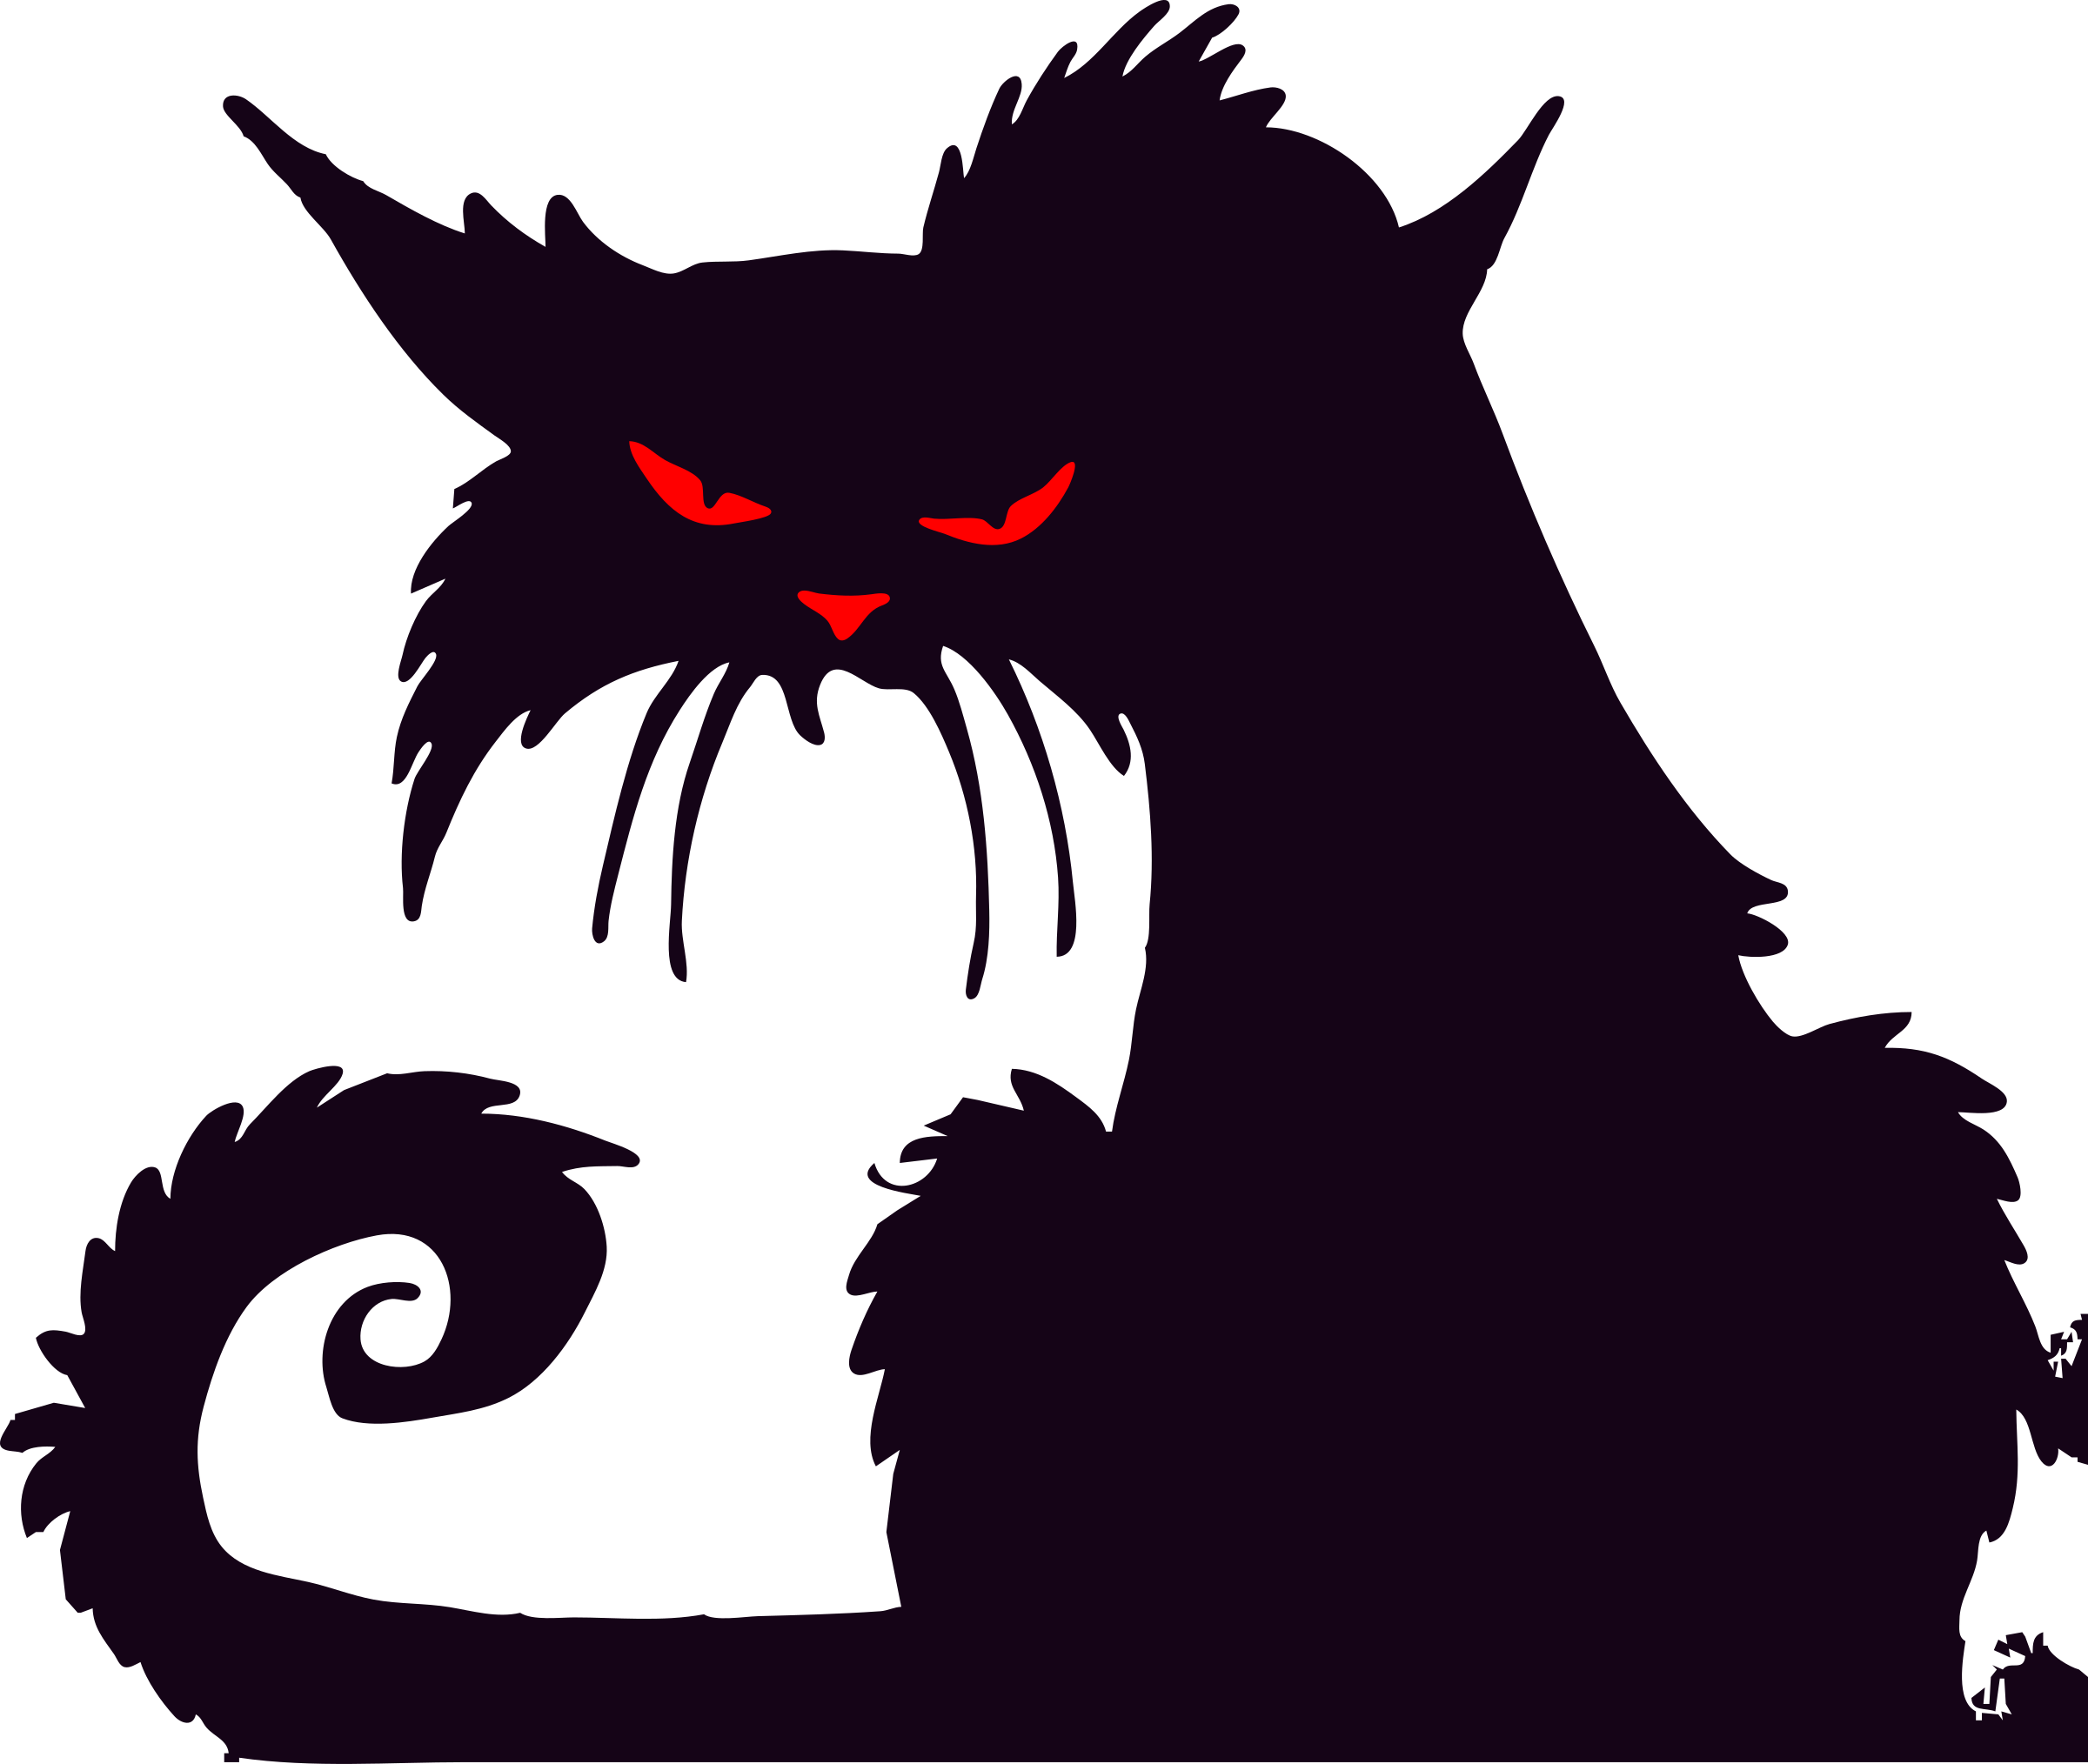 Angry cat clipart clipart black and white stock 28+ Collection of Angry Cat Clipart | High quality, free cliparts ... clipart black and white stock